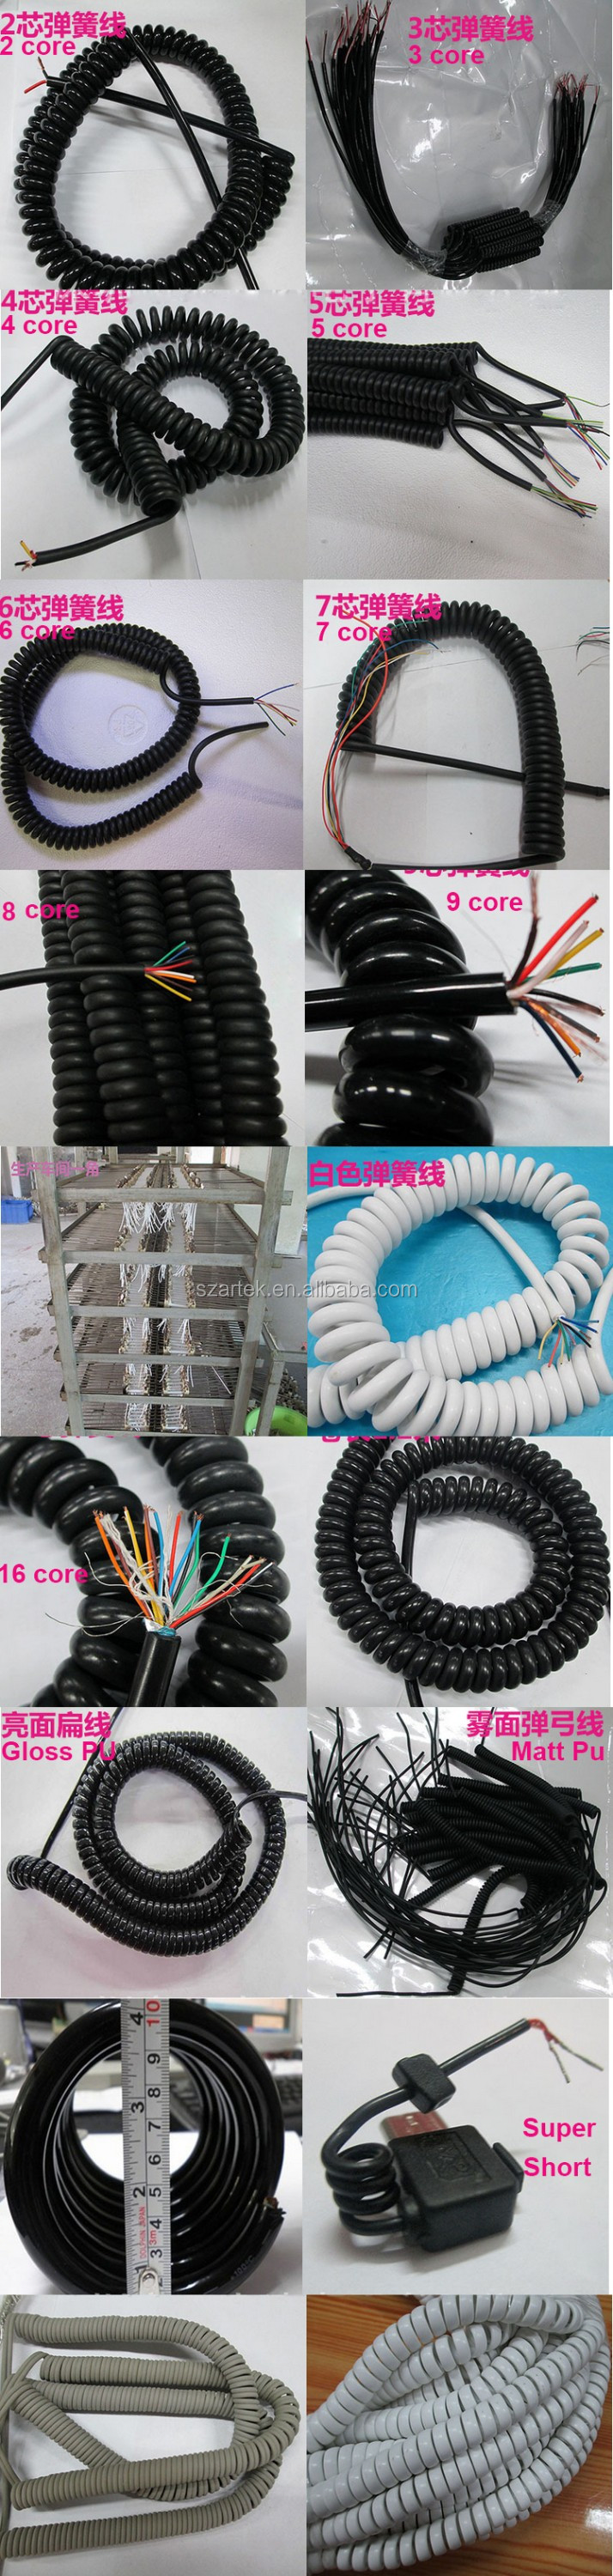 7 core 0.5mm2 stranded pure copper cable outer diamter 30mm spiral cable